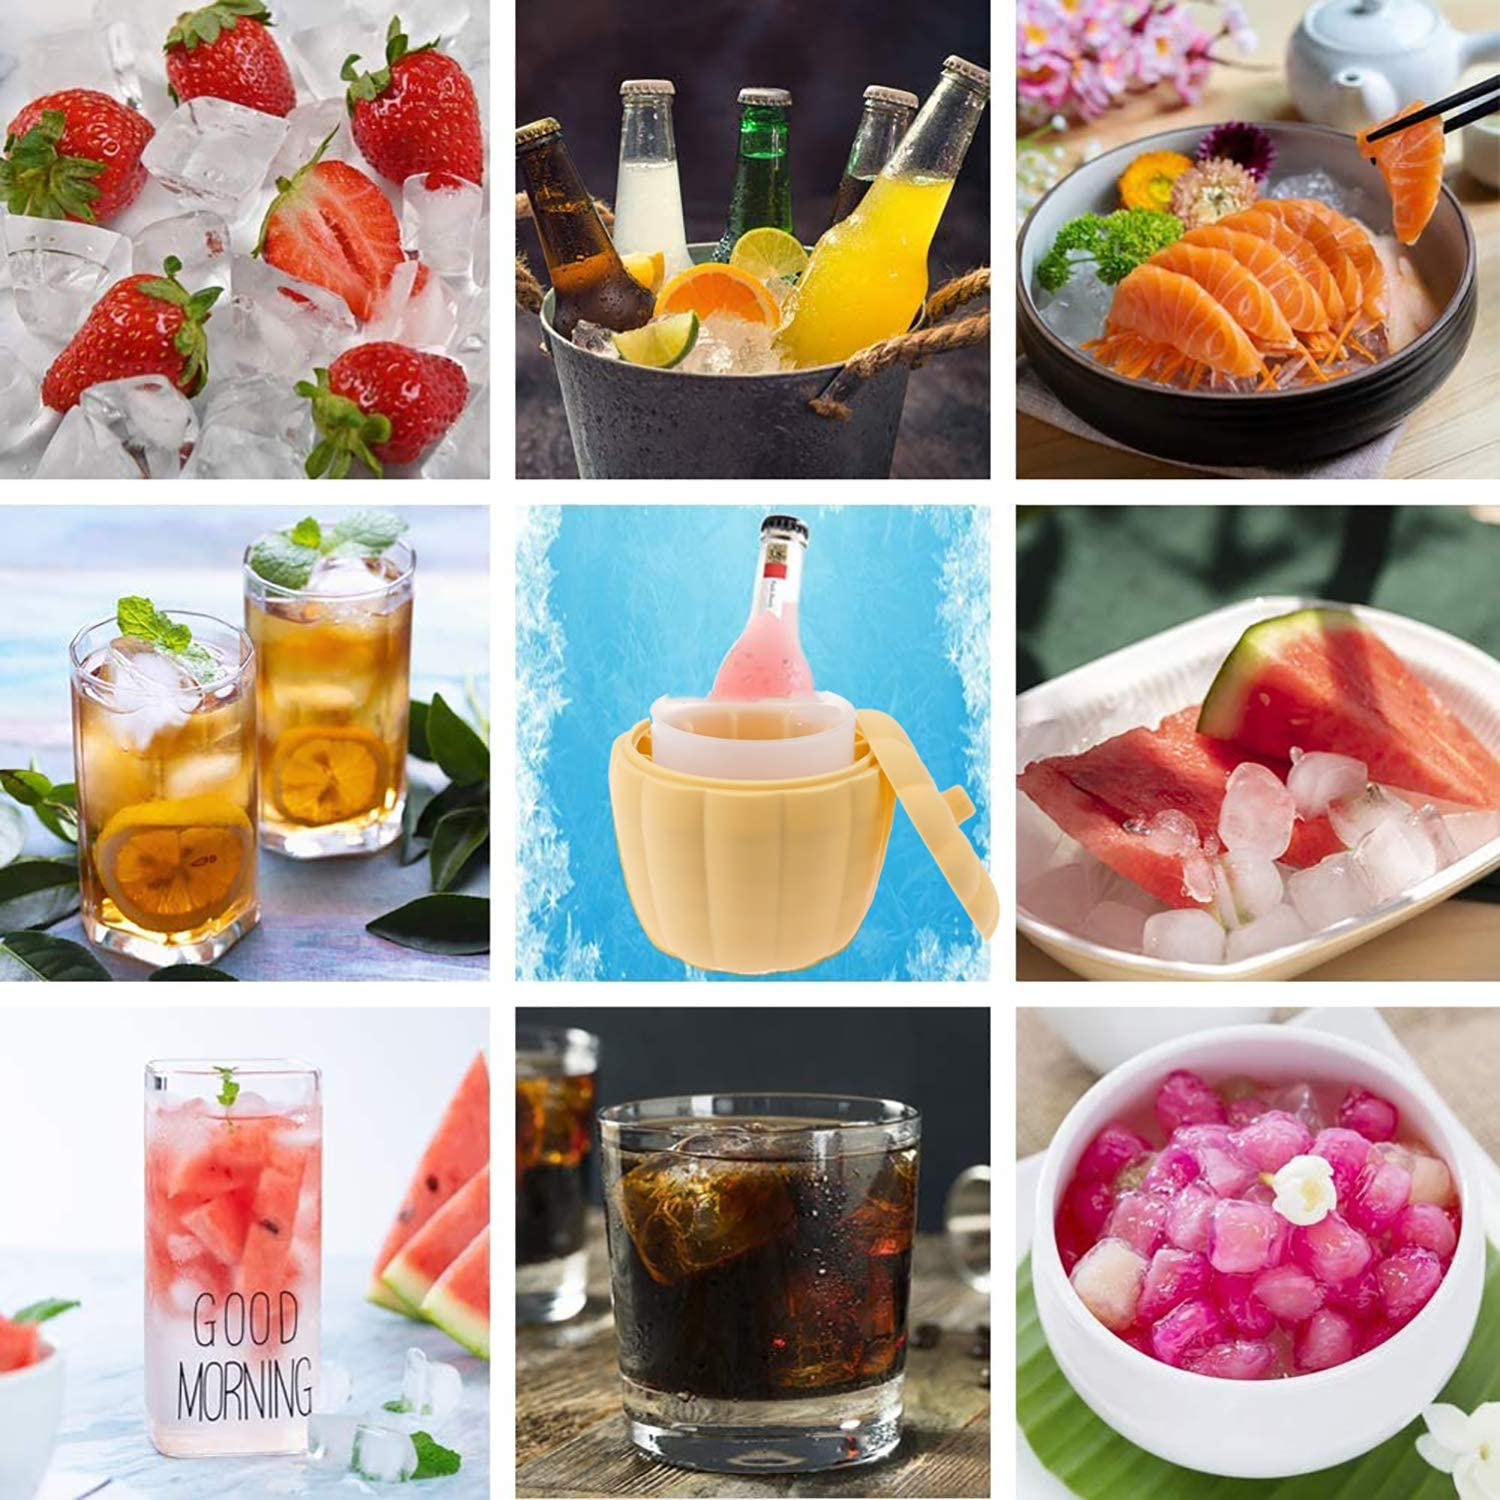 Aliyaduo Ice Maker Bucket Ice Cube Bucket Cute Pumpkin Crushed Ice Maker for Frozen Drink Double Layer with Lid